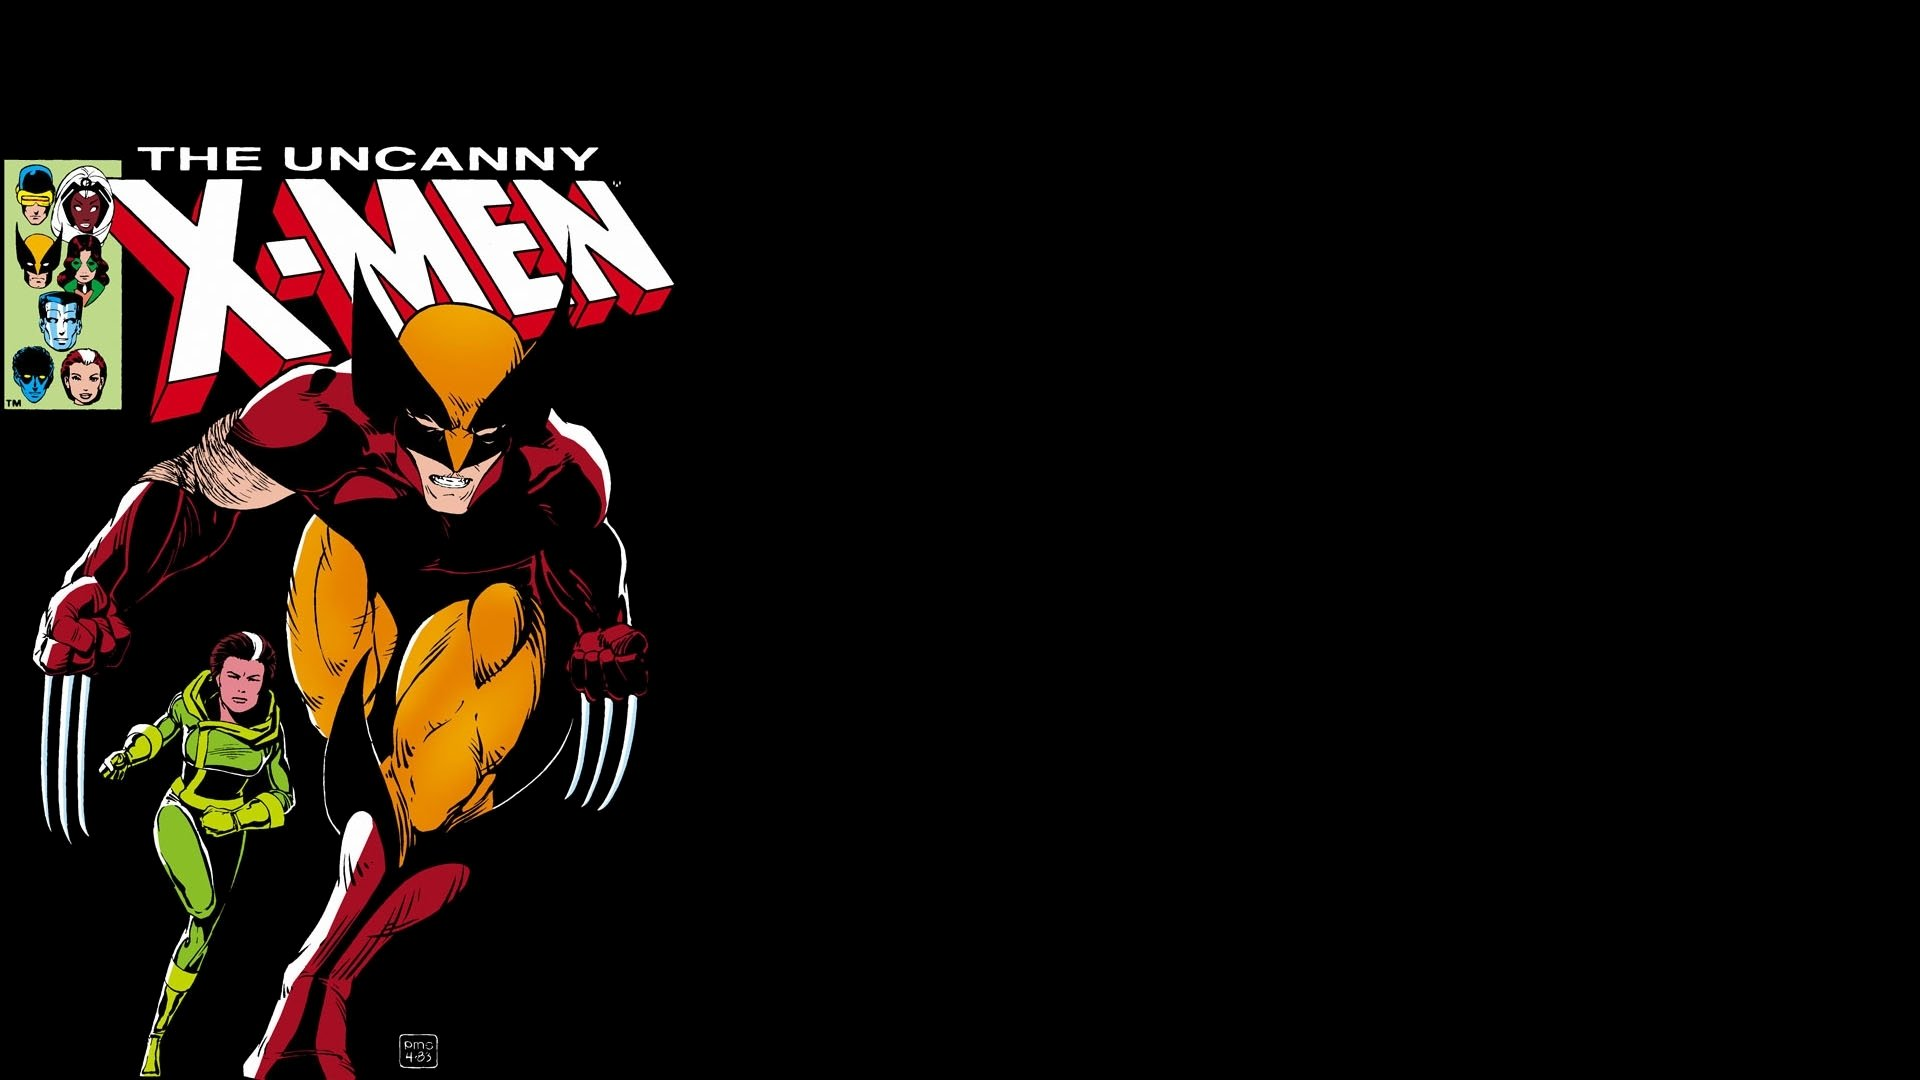 Uncanny X Men Hd: Uncanny X-Men Full HD Wallpaper And Background Image